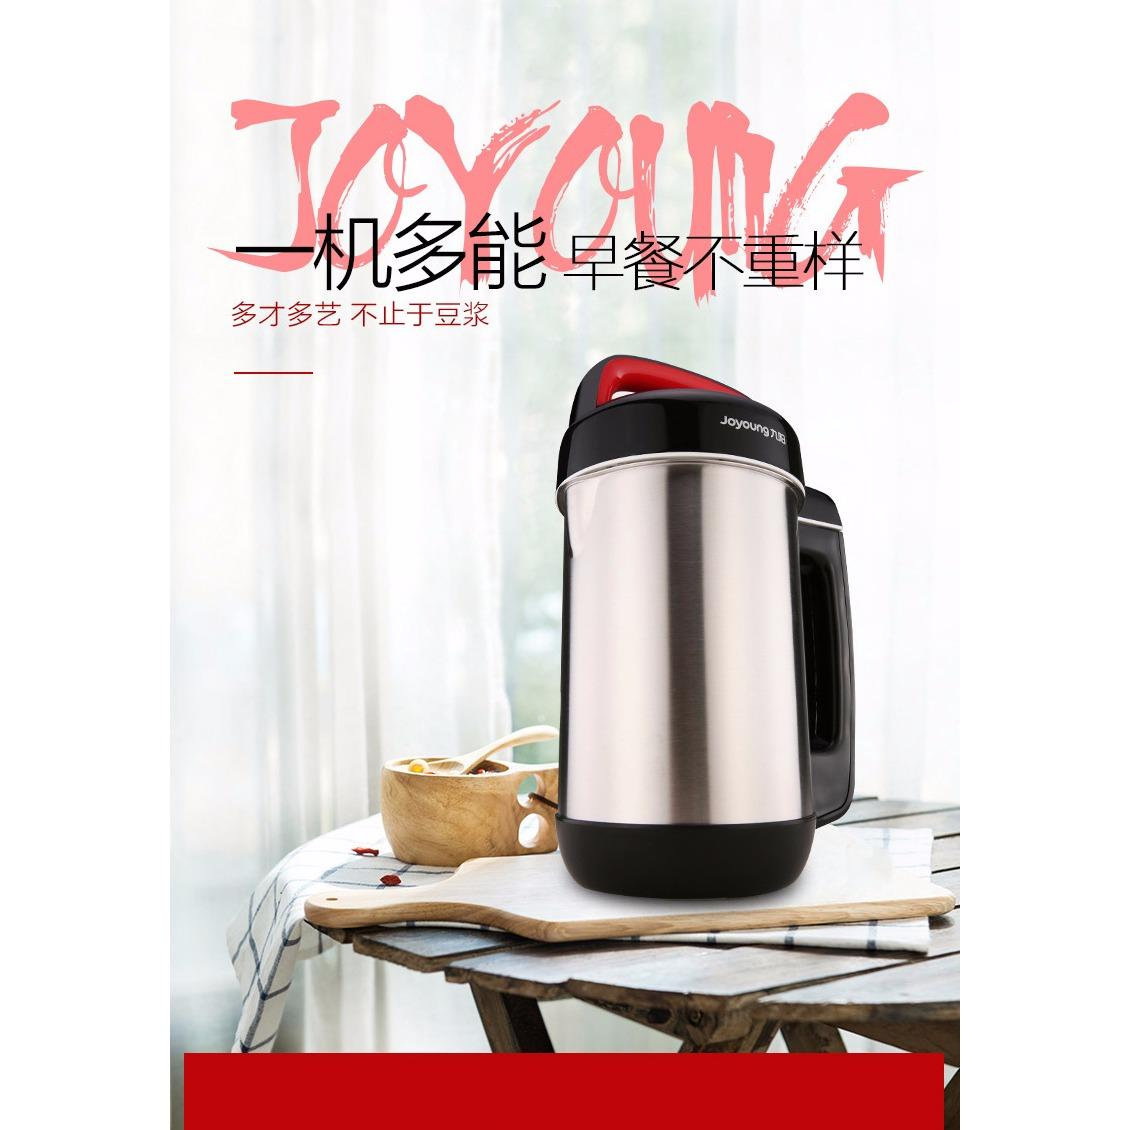 Rc-Global Deluxe 1.2l Soybean Milk Maker Multifunctional Automatic Soymilk Maker (black) (joyoung Dj-12b-A10) 九阳多功能全自动豆浆机 By Rc-Global.